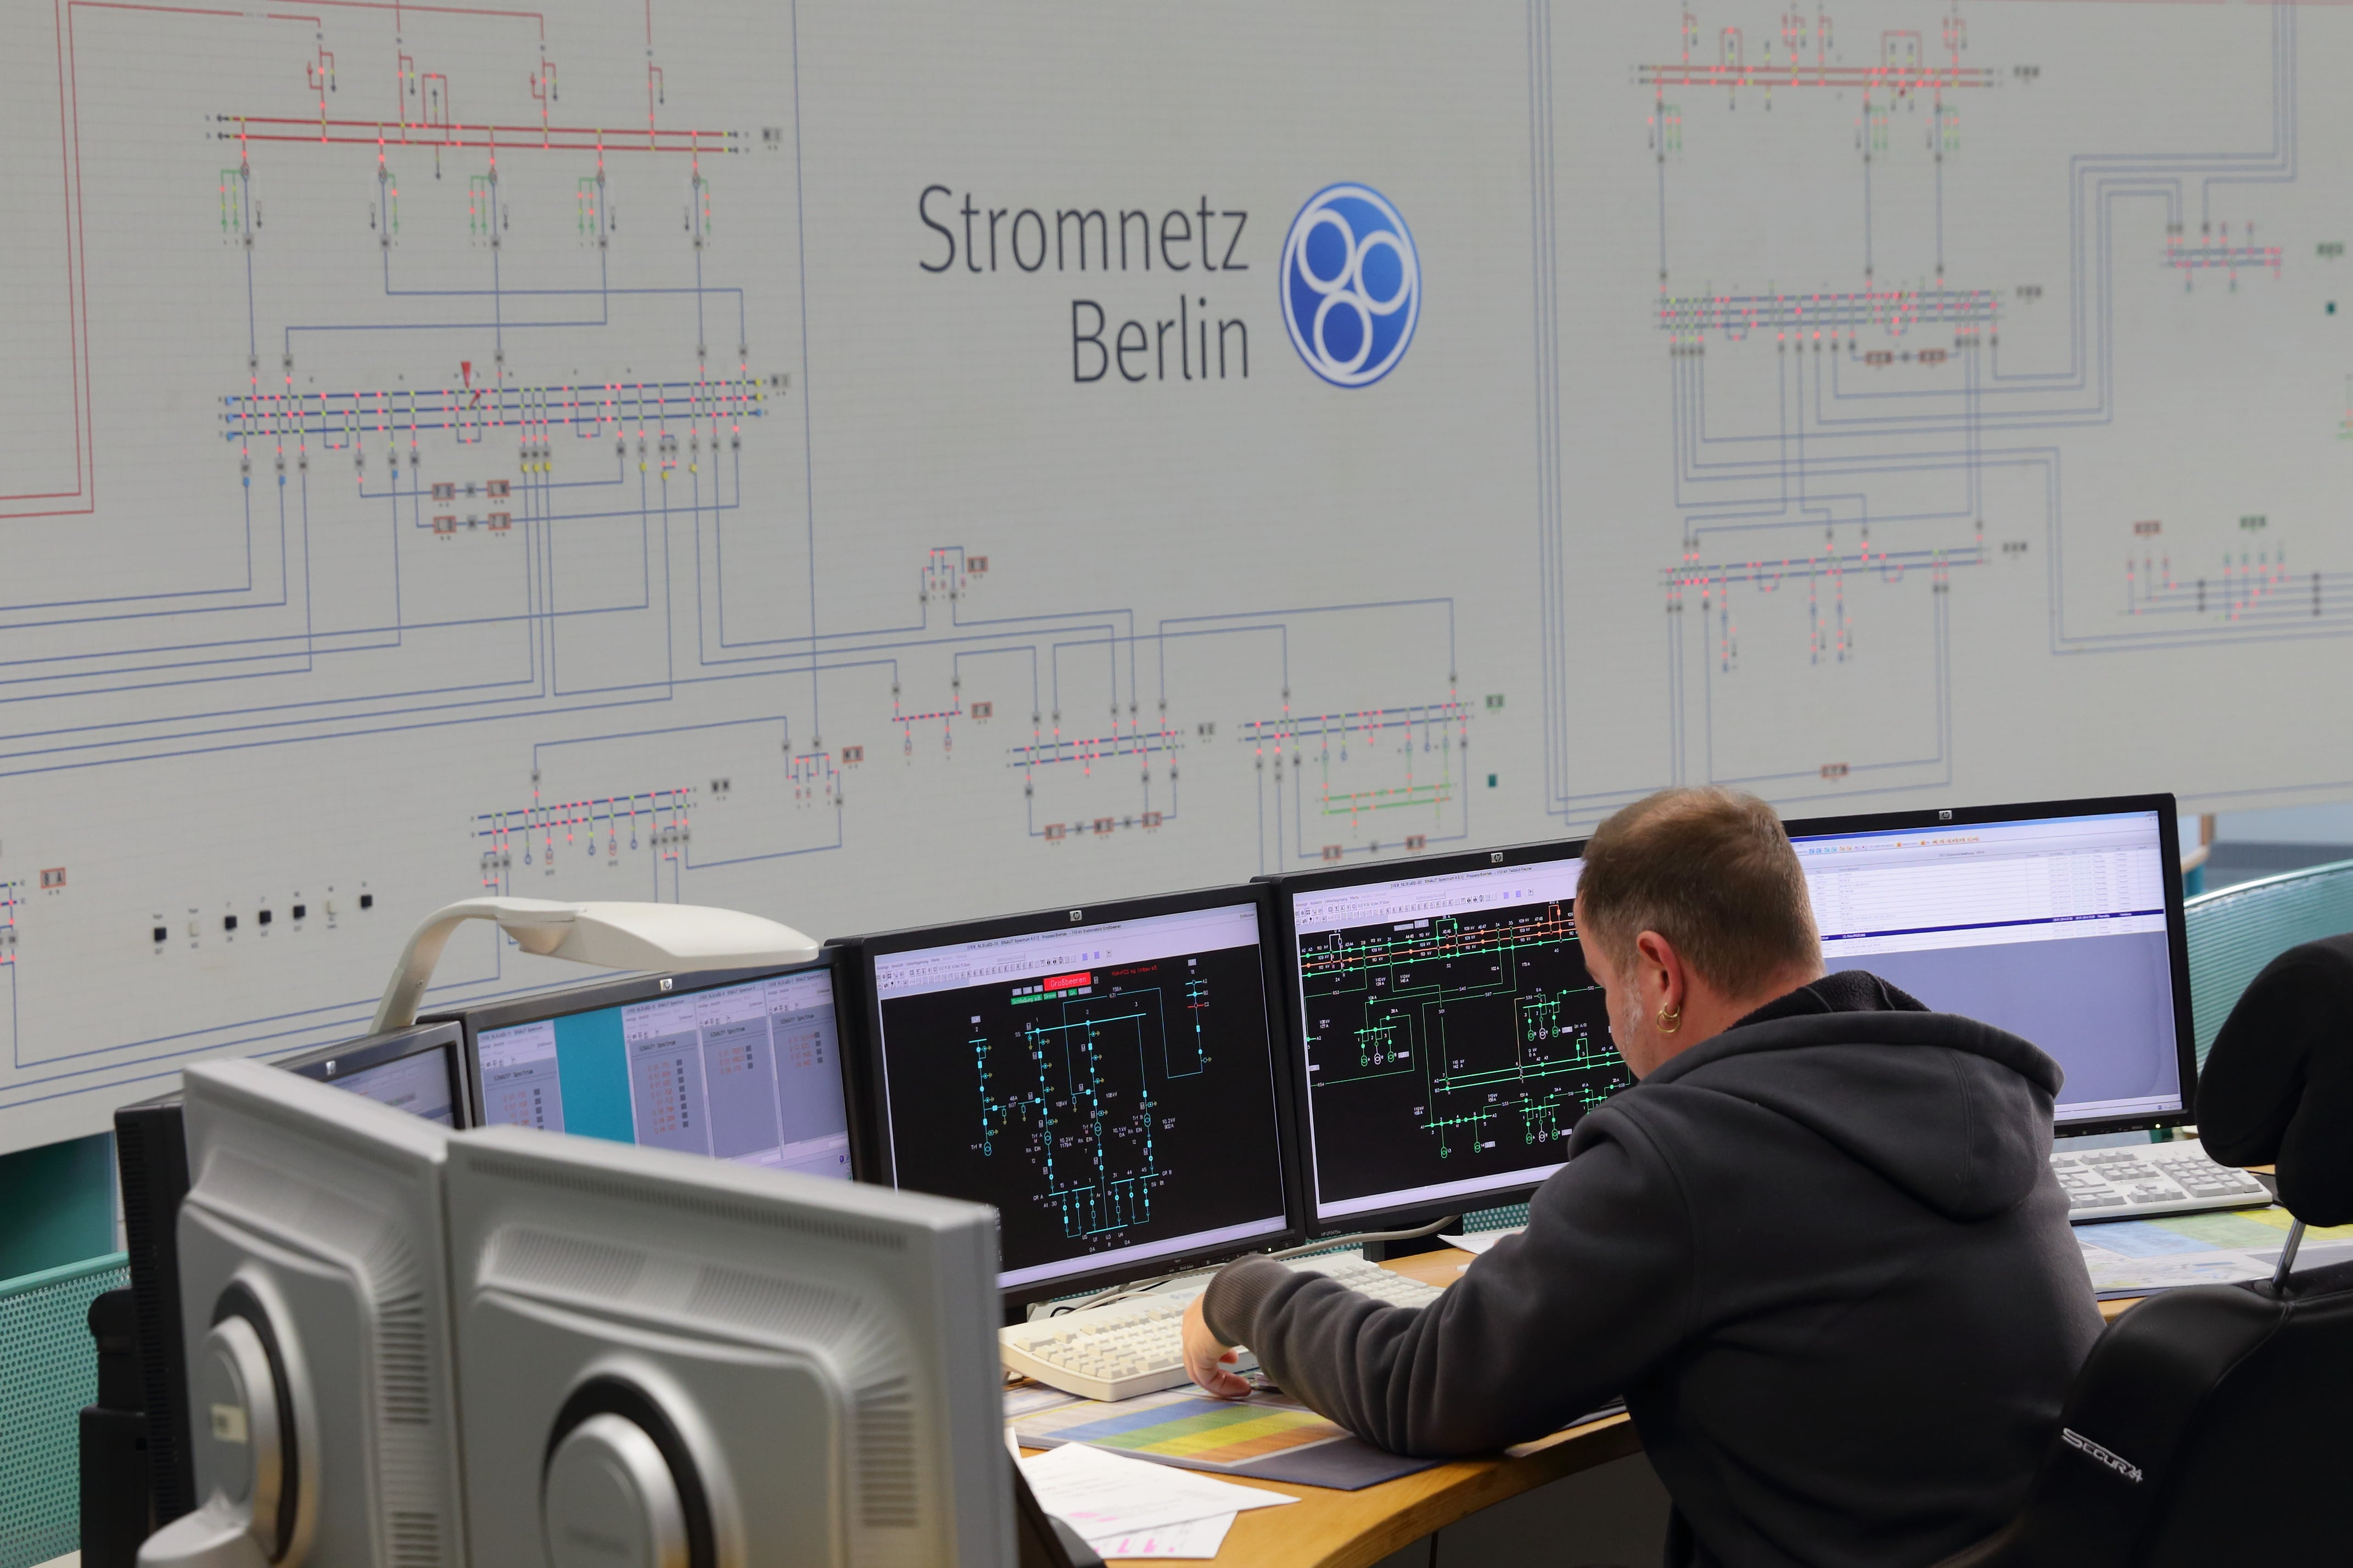 This pictures shows a member of the Stromnetz Berlin staff in the control room, looking at monitors.